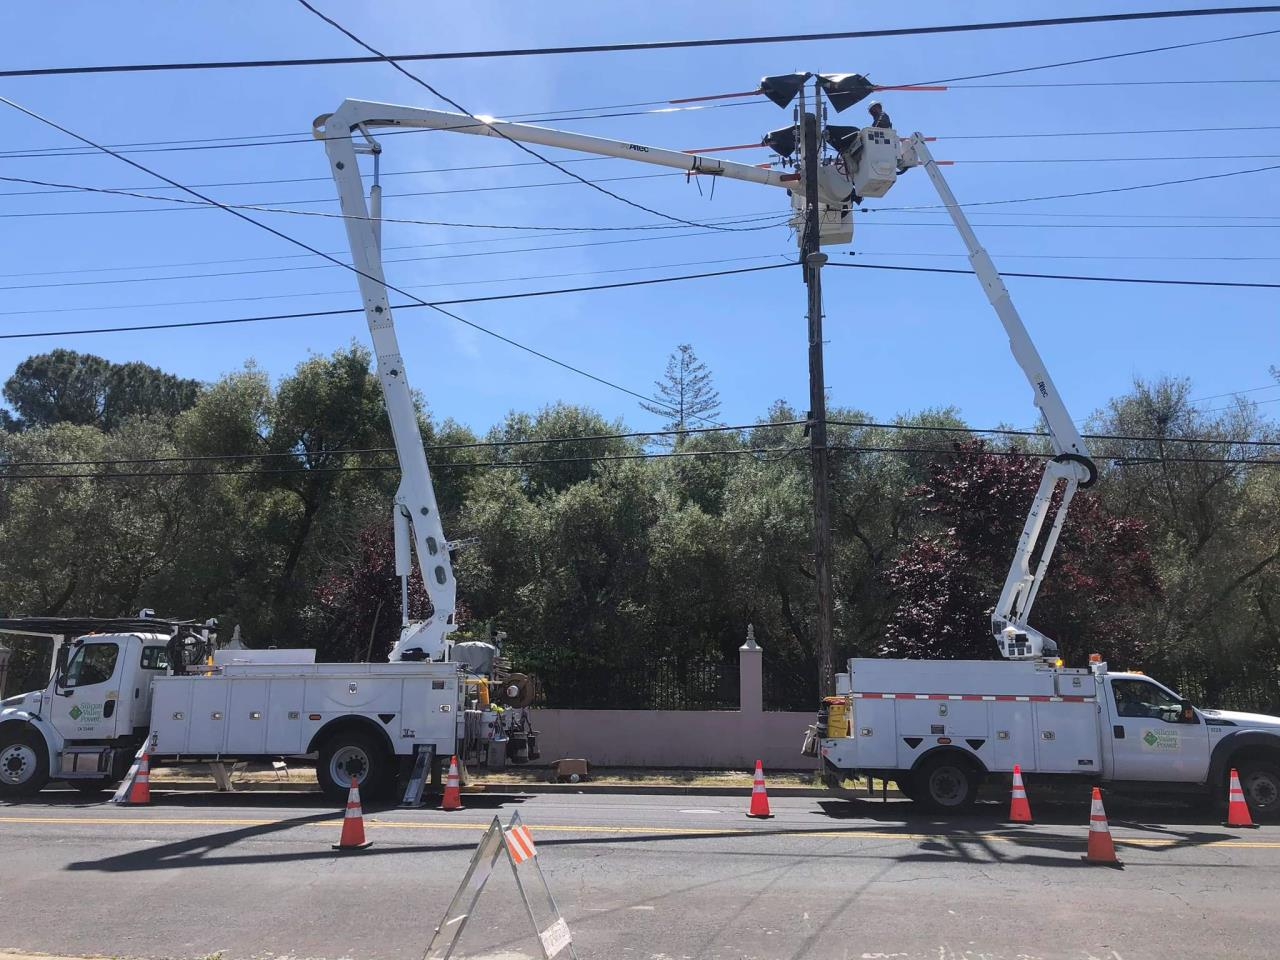 2 bucket trucks working on a power line